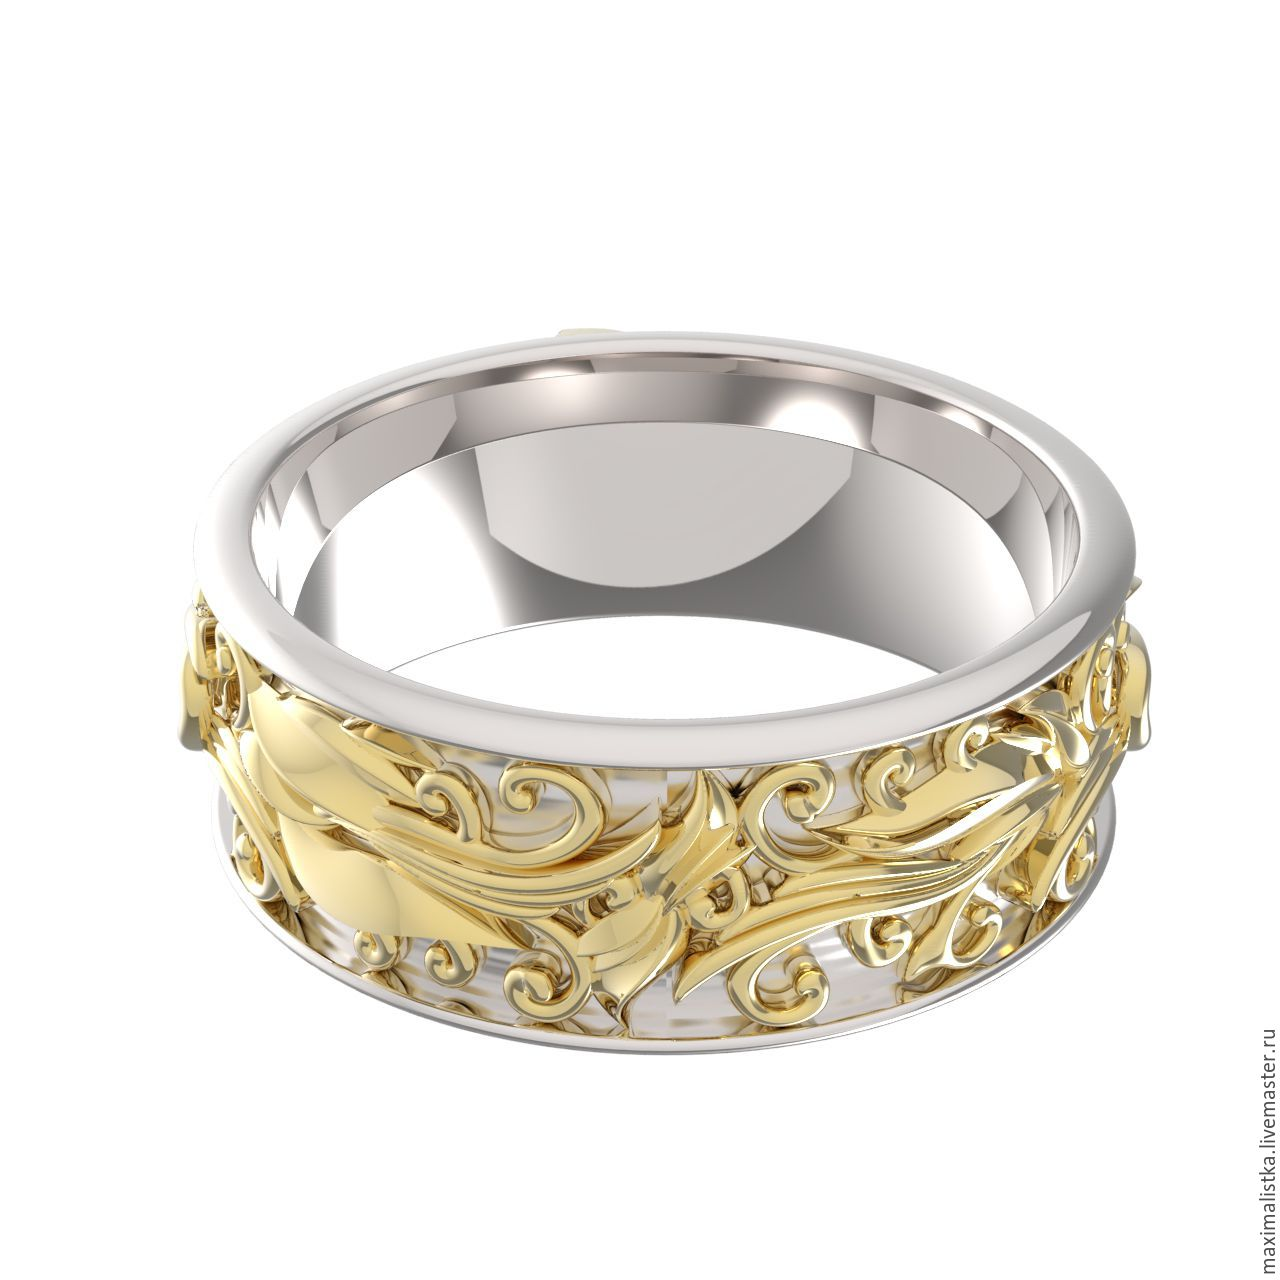 rings classic engagement will golden settings banners be cherished tasteful our eshop designed and setting straight on gabriel forever feel your style they cathedral to today anniversary do co as